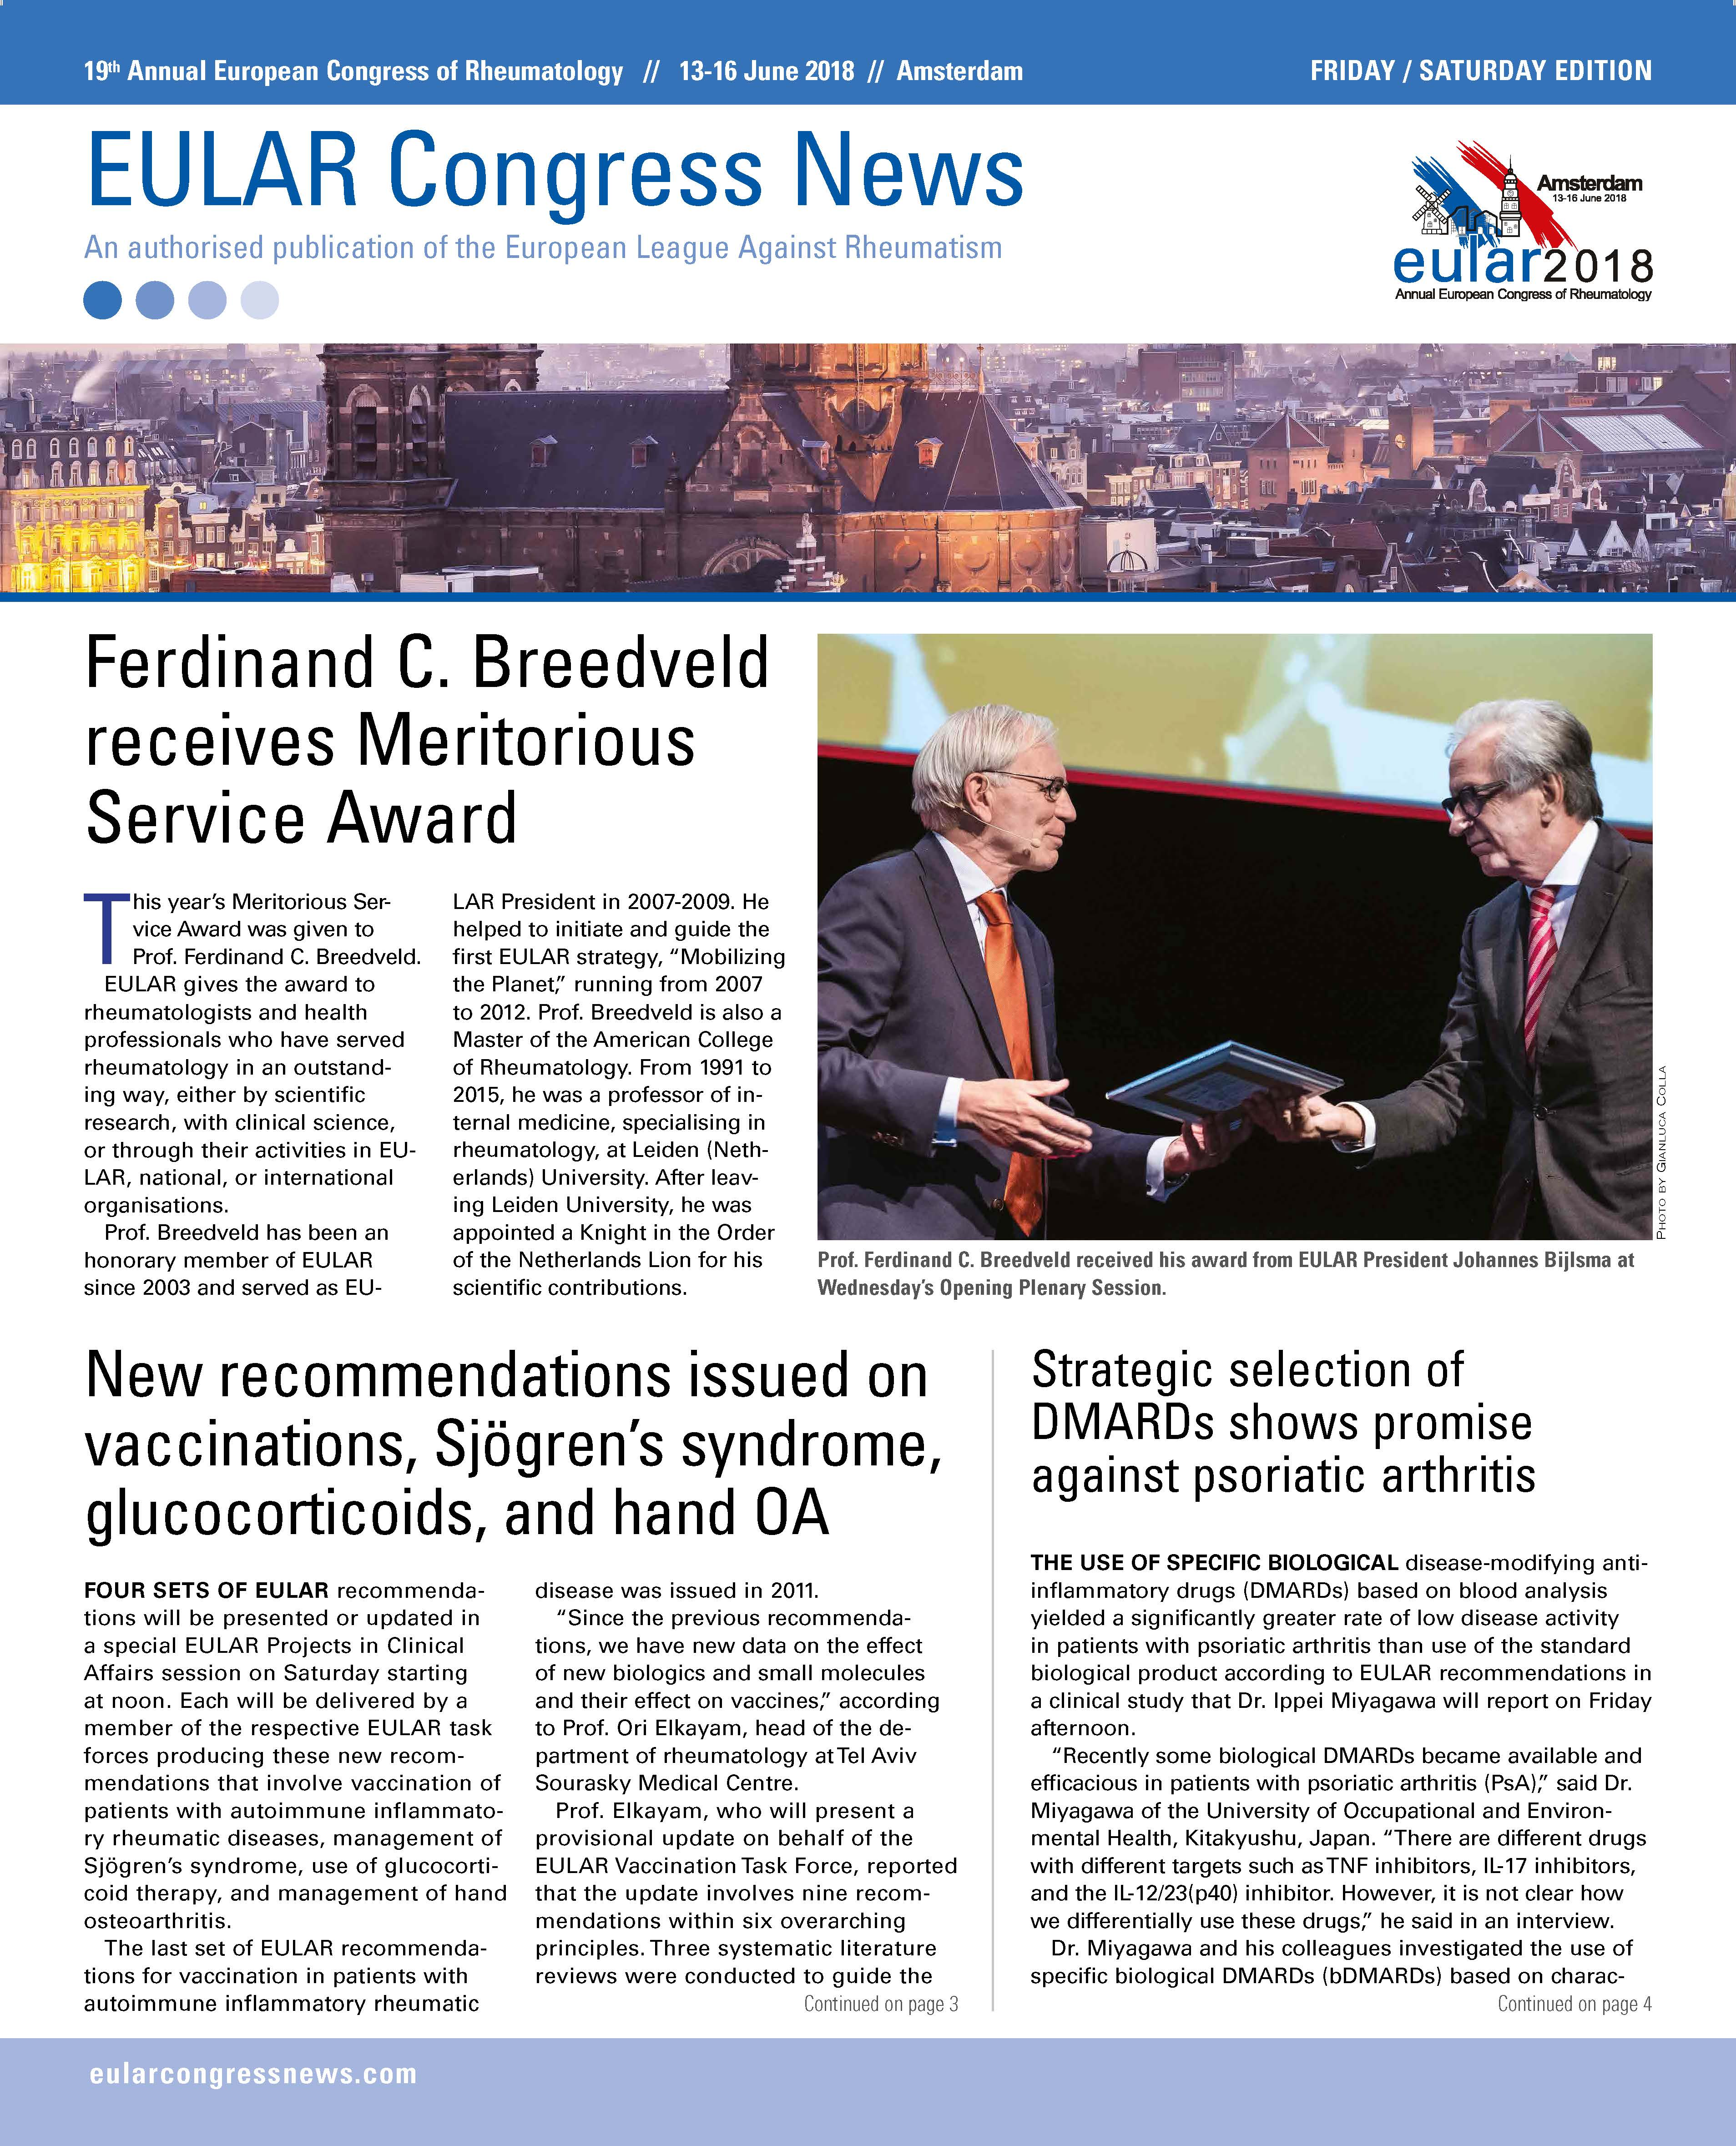 EULAR Congress News: Friday/Saturday - 15/16 June Edition